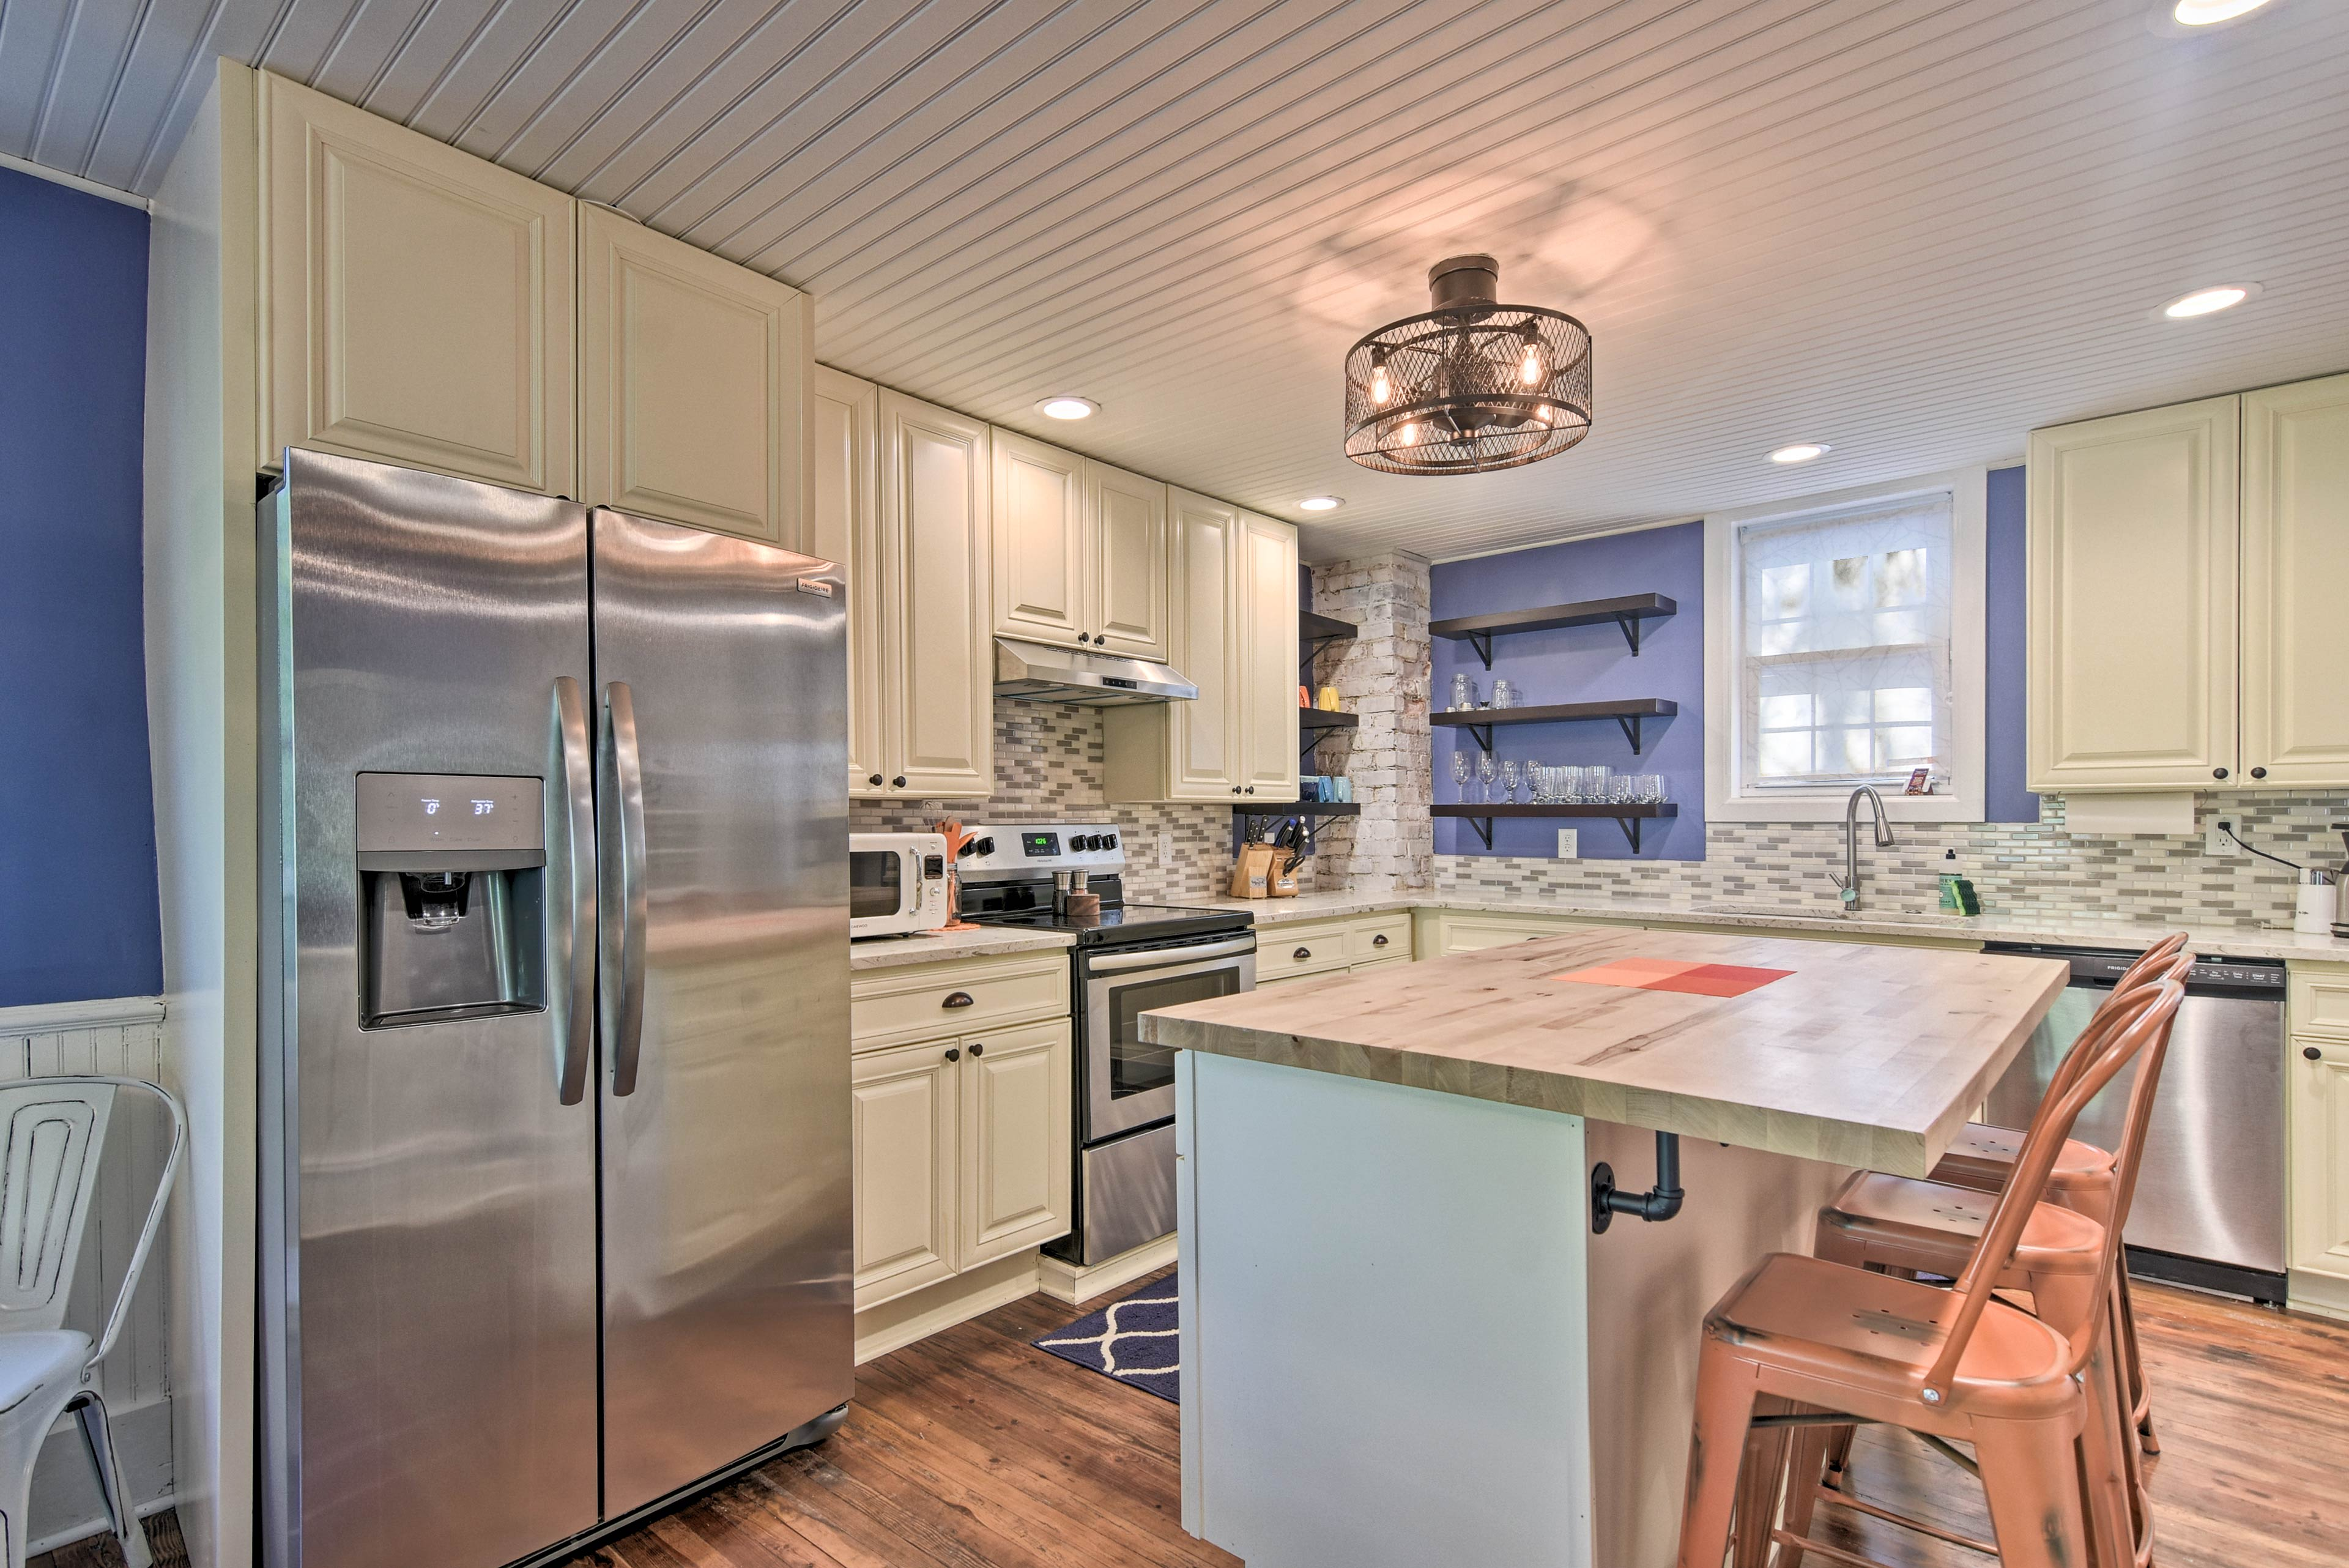 The space is outfitted with stainless steel appliances.